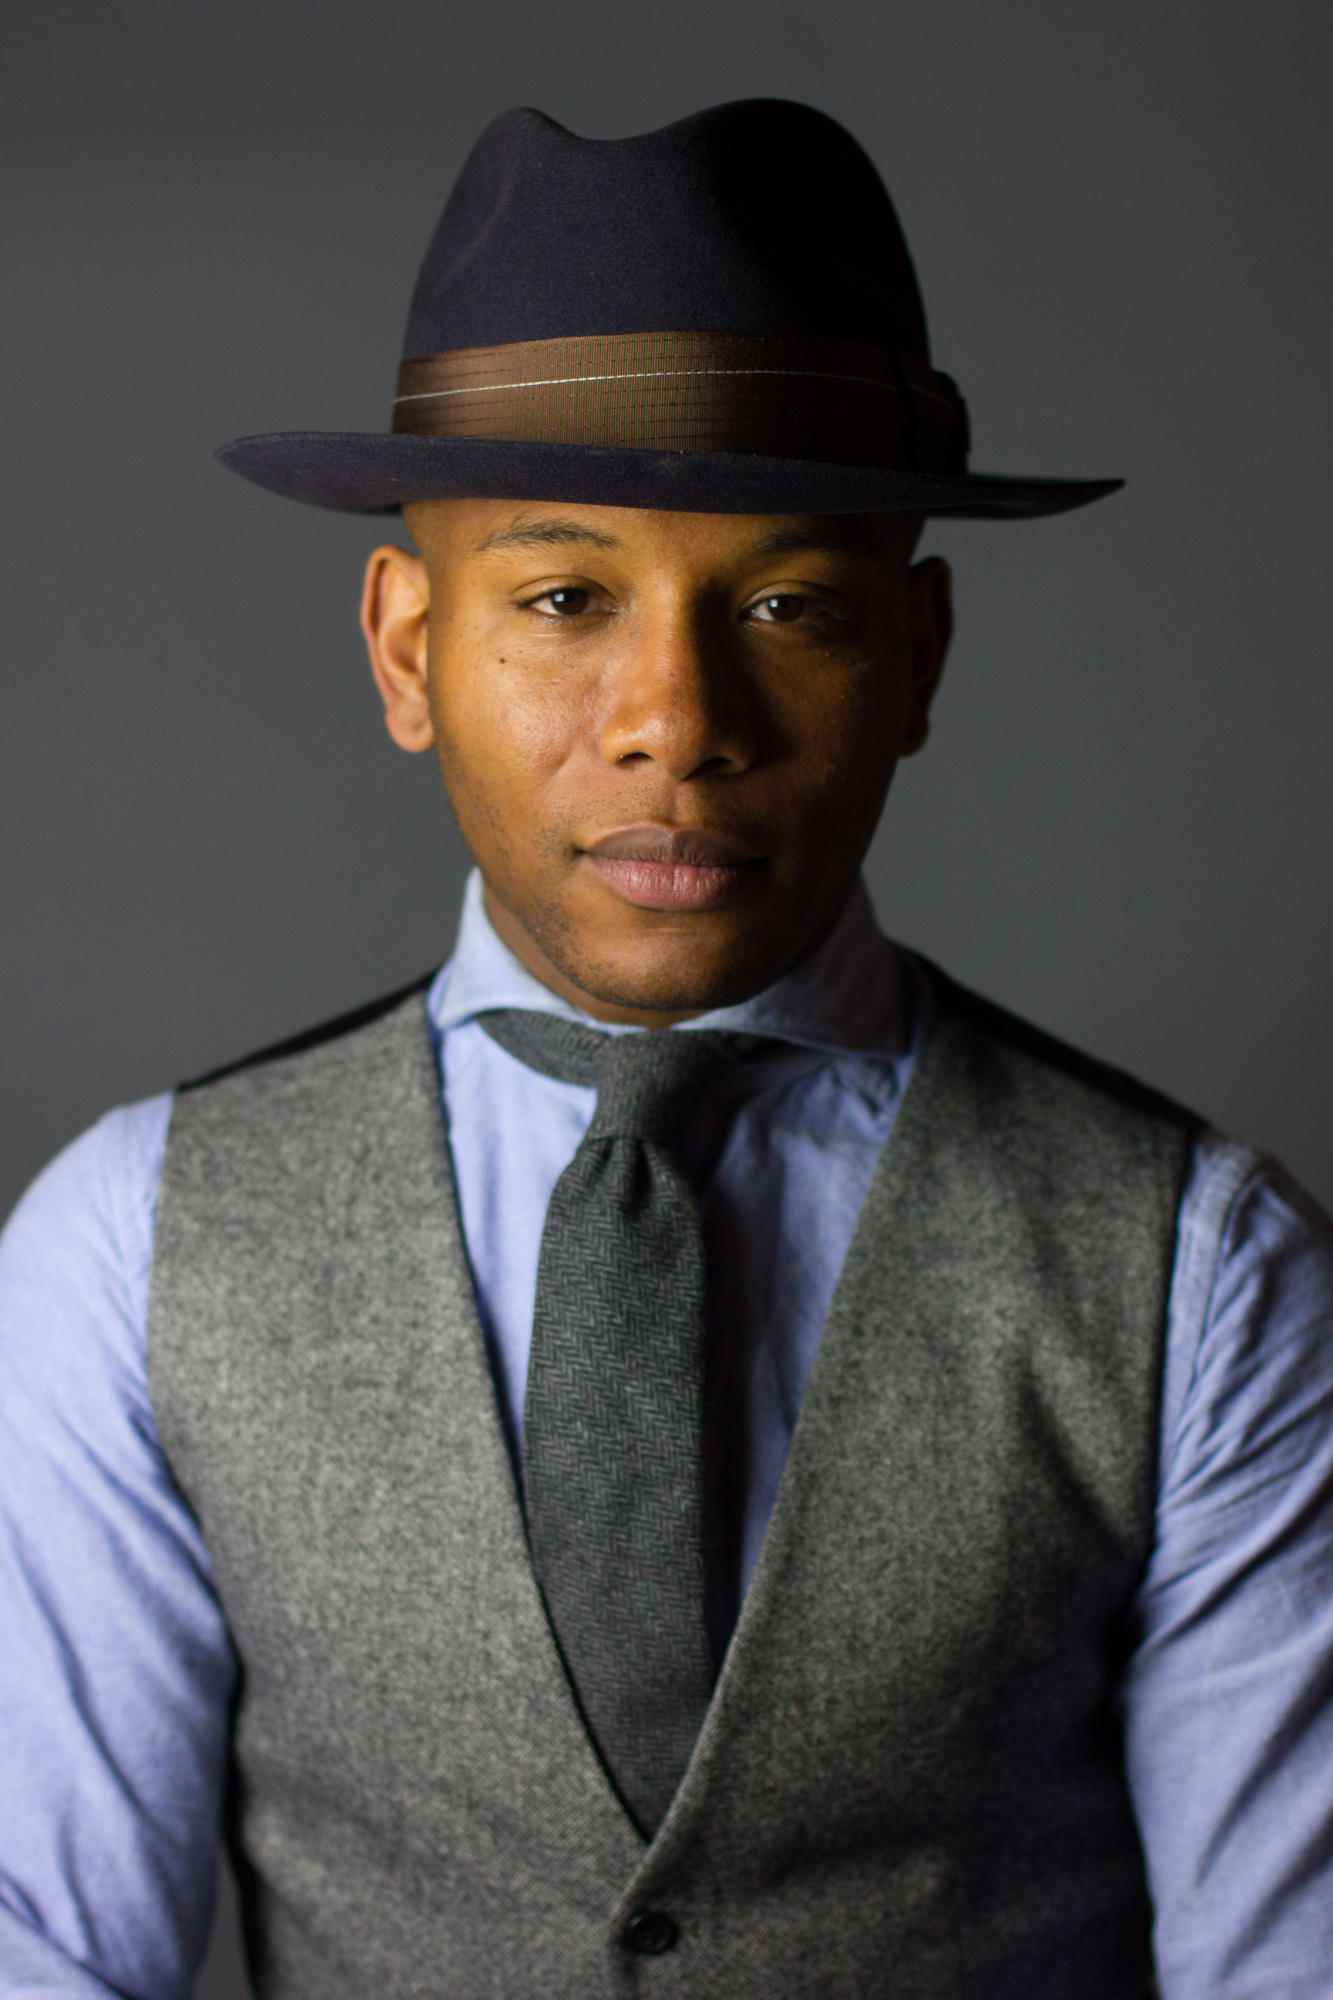 Sabir M Peele of Men's style pro in brimmed hats from goorin bros